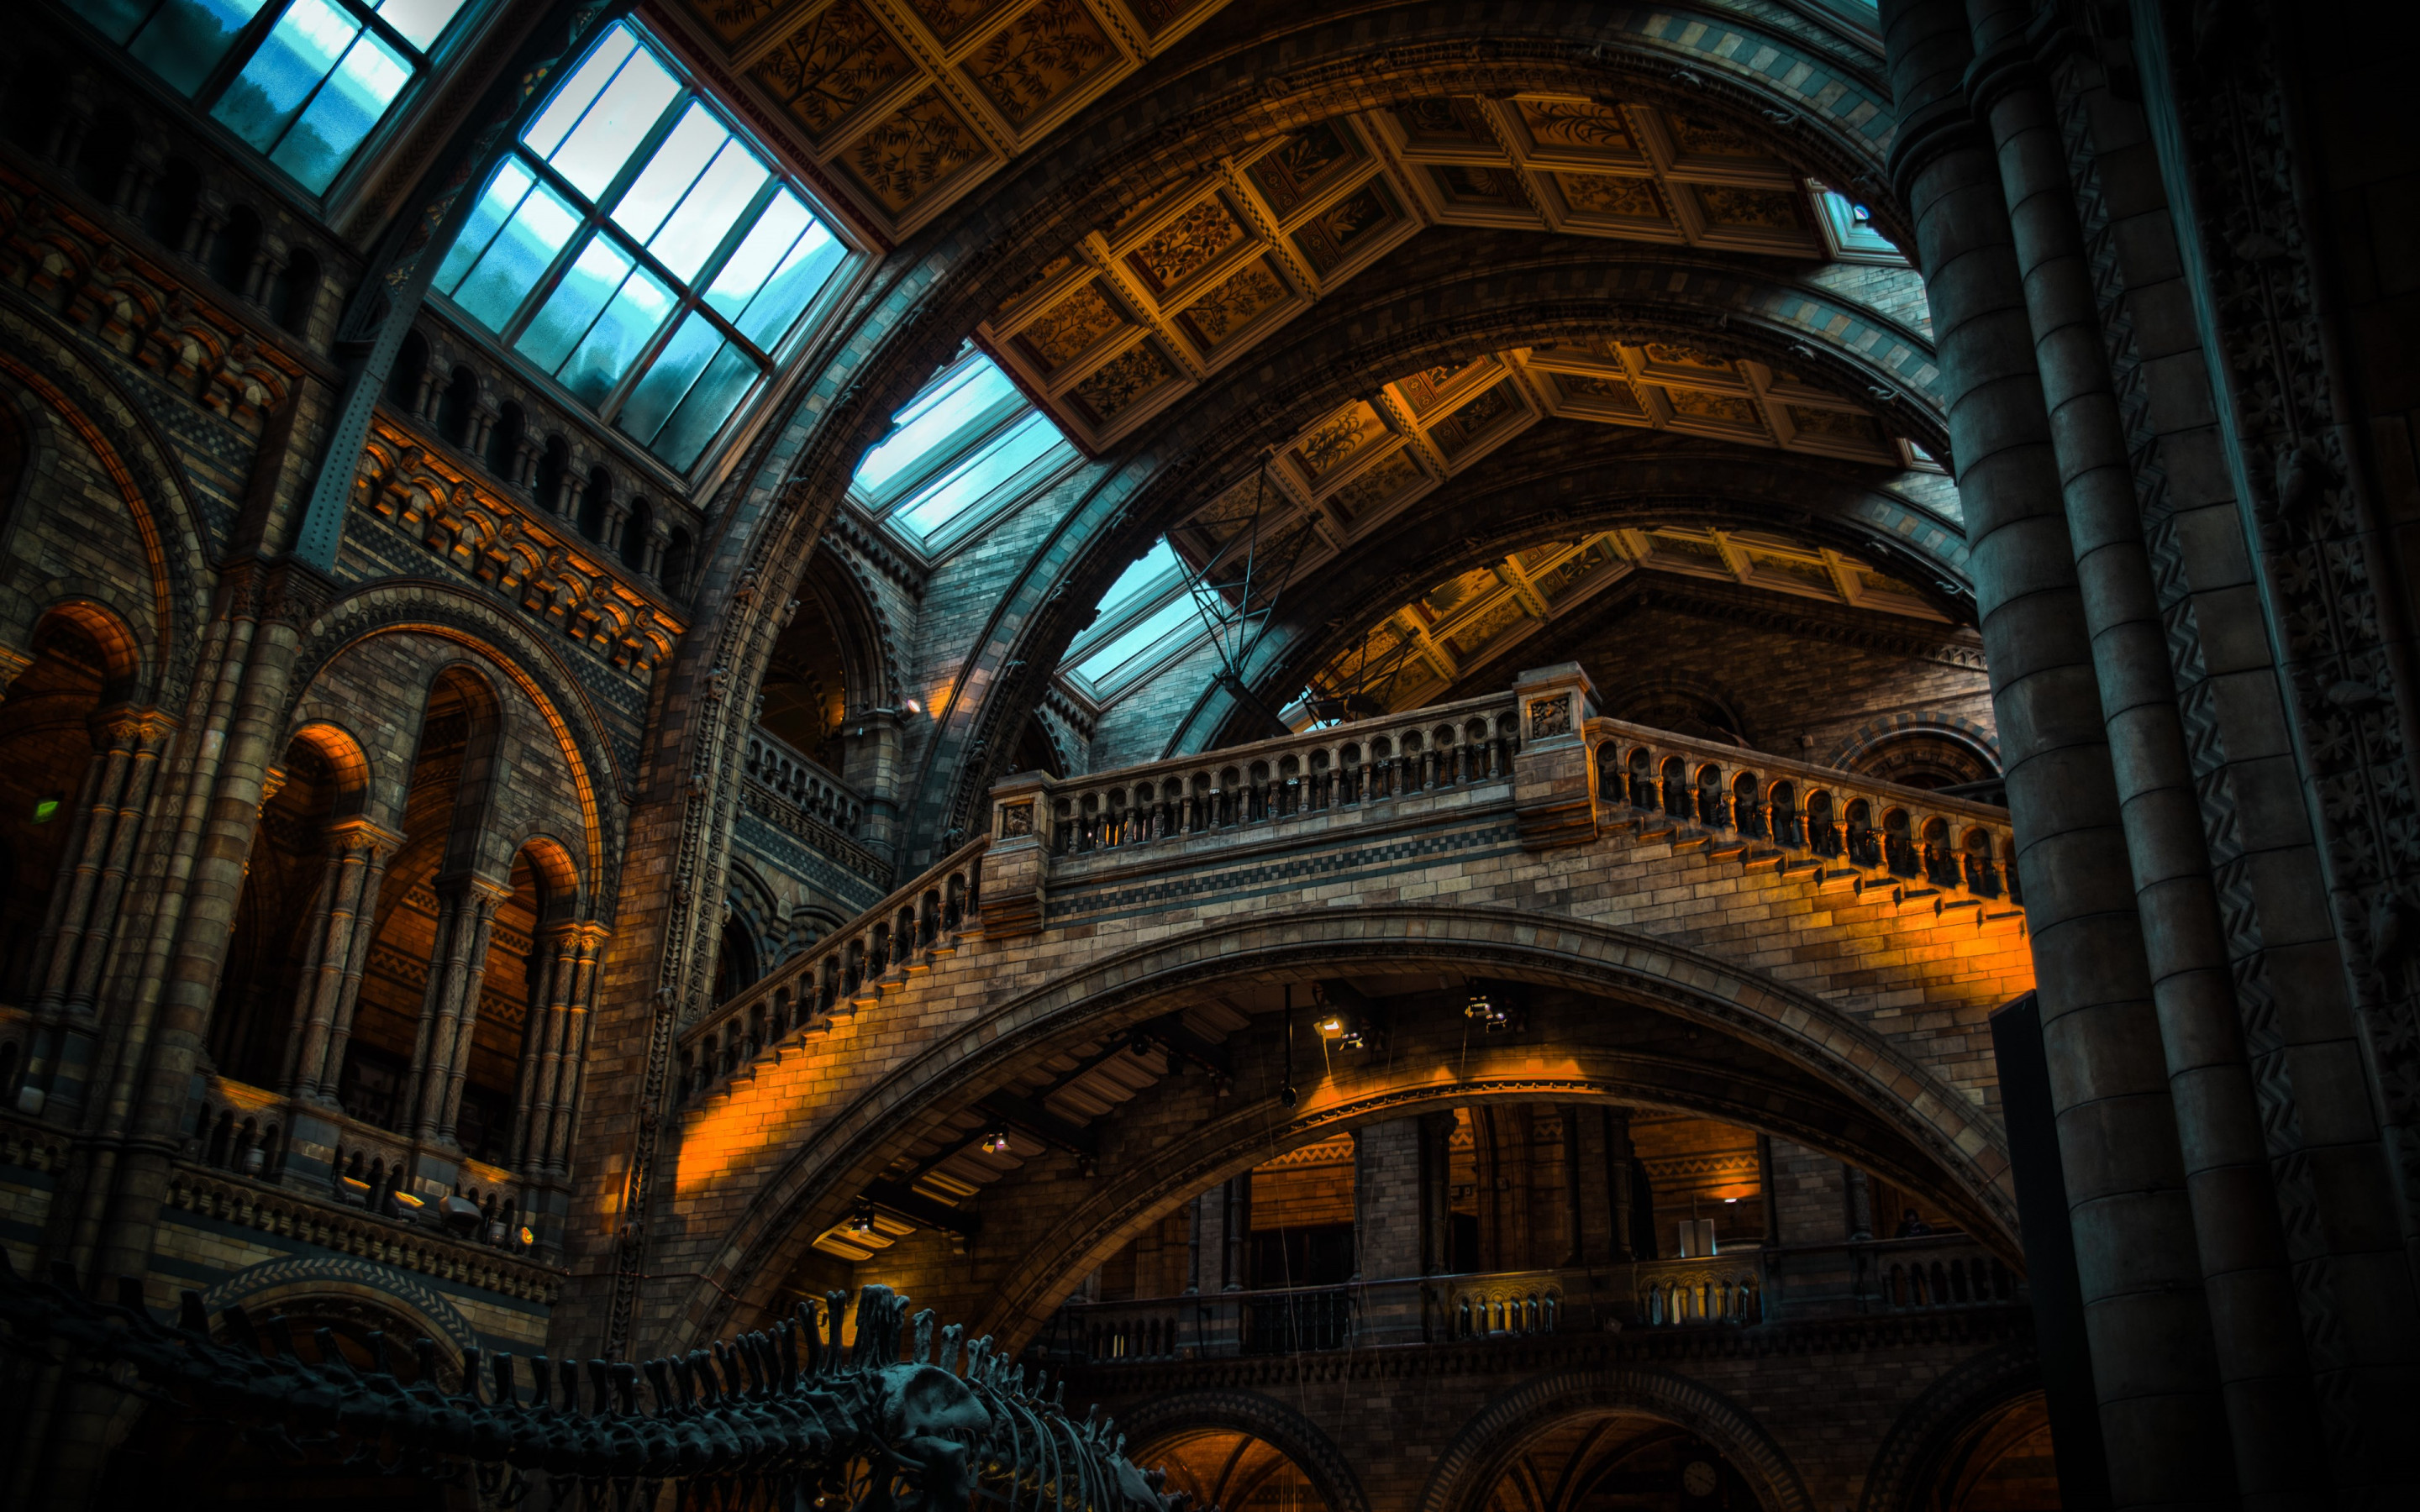 Inside of Natural History Museum from London | 2880x1800 wallpaper